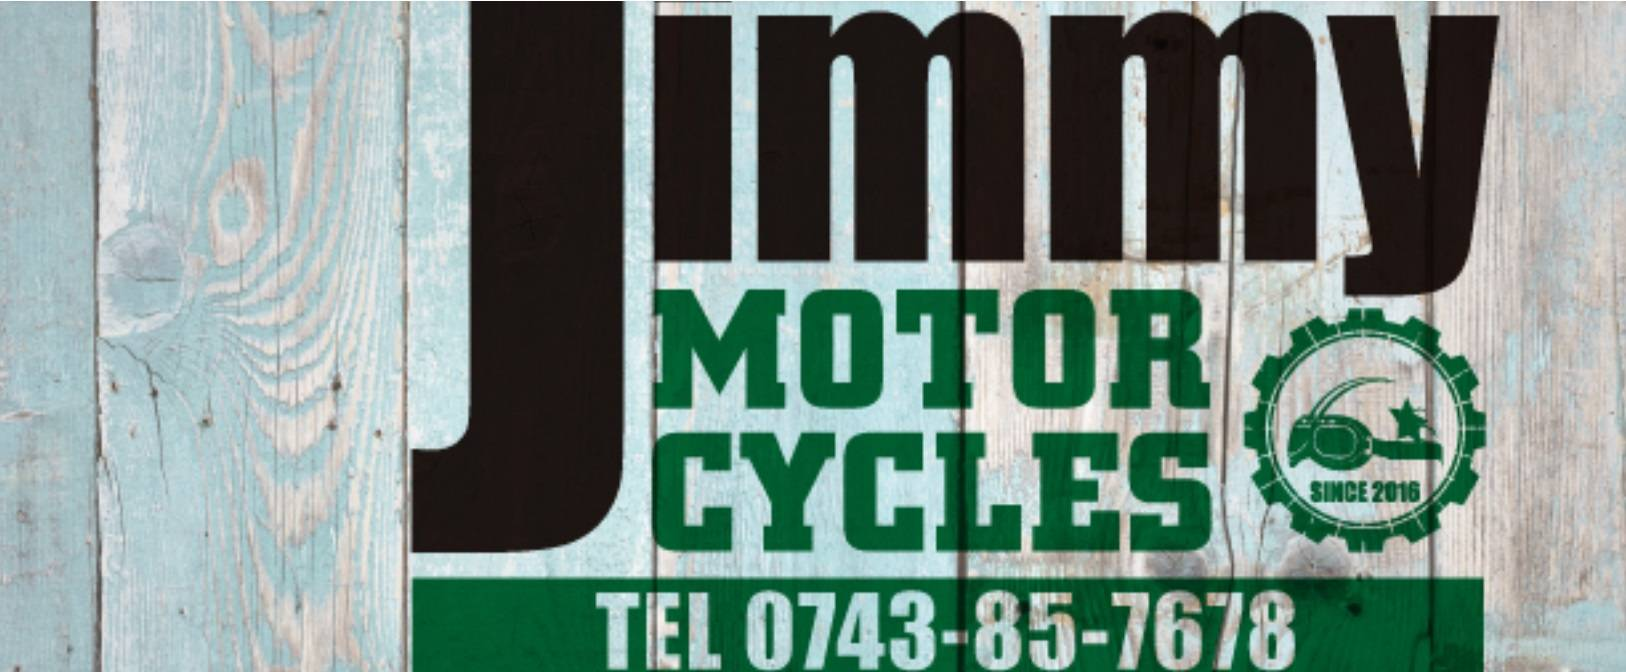 Jimmy MOTOR CYCLES